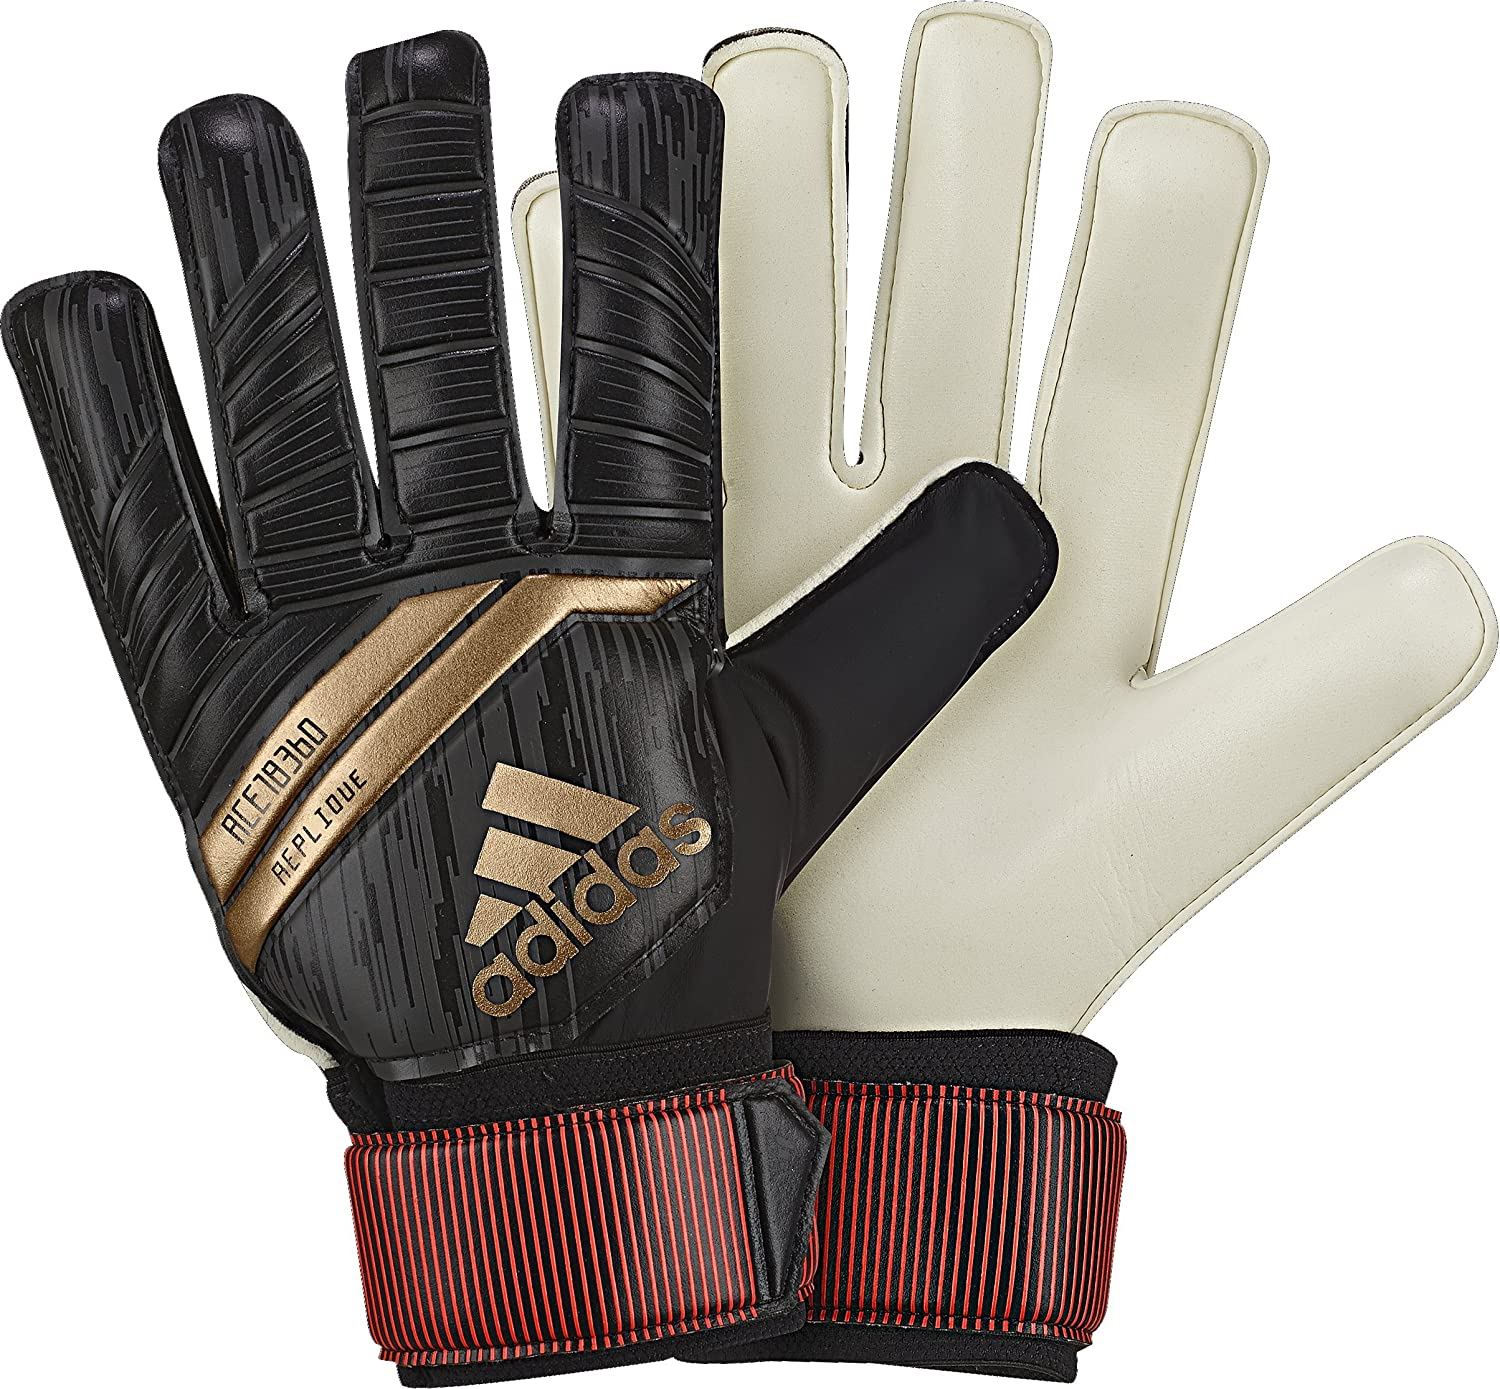 Adidas Performance Ace Replique Handschuhe